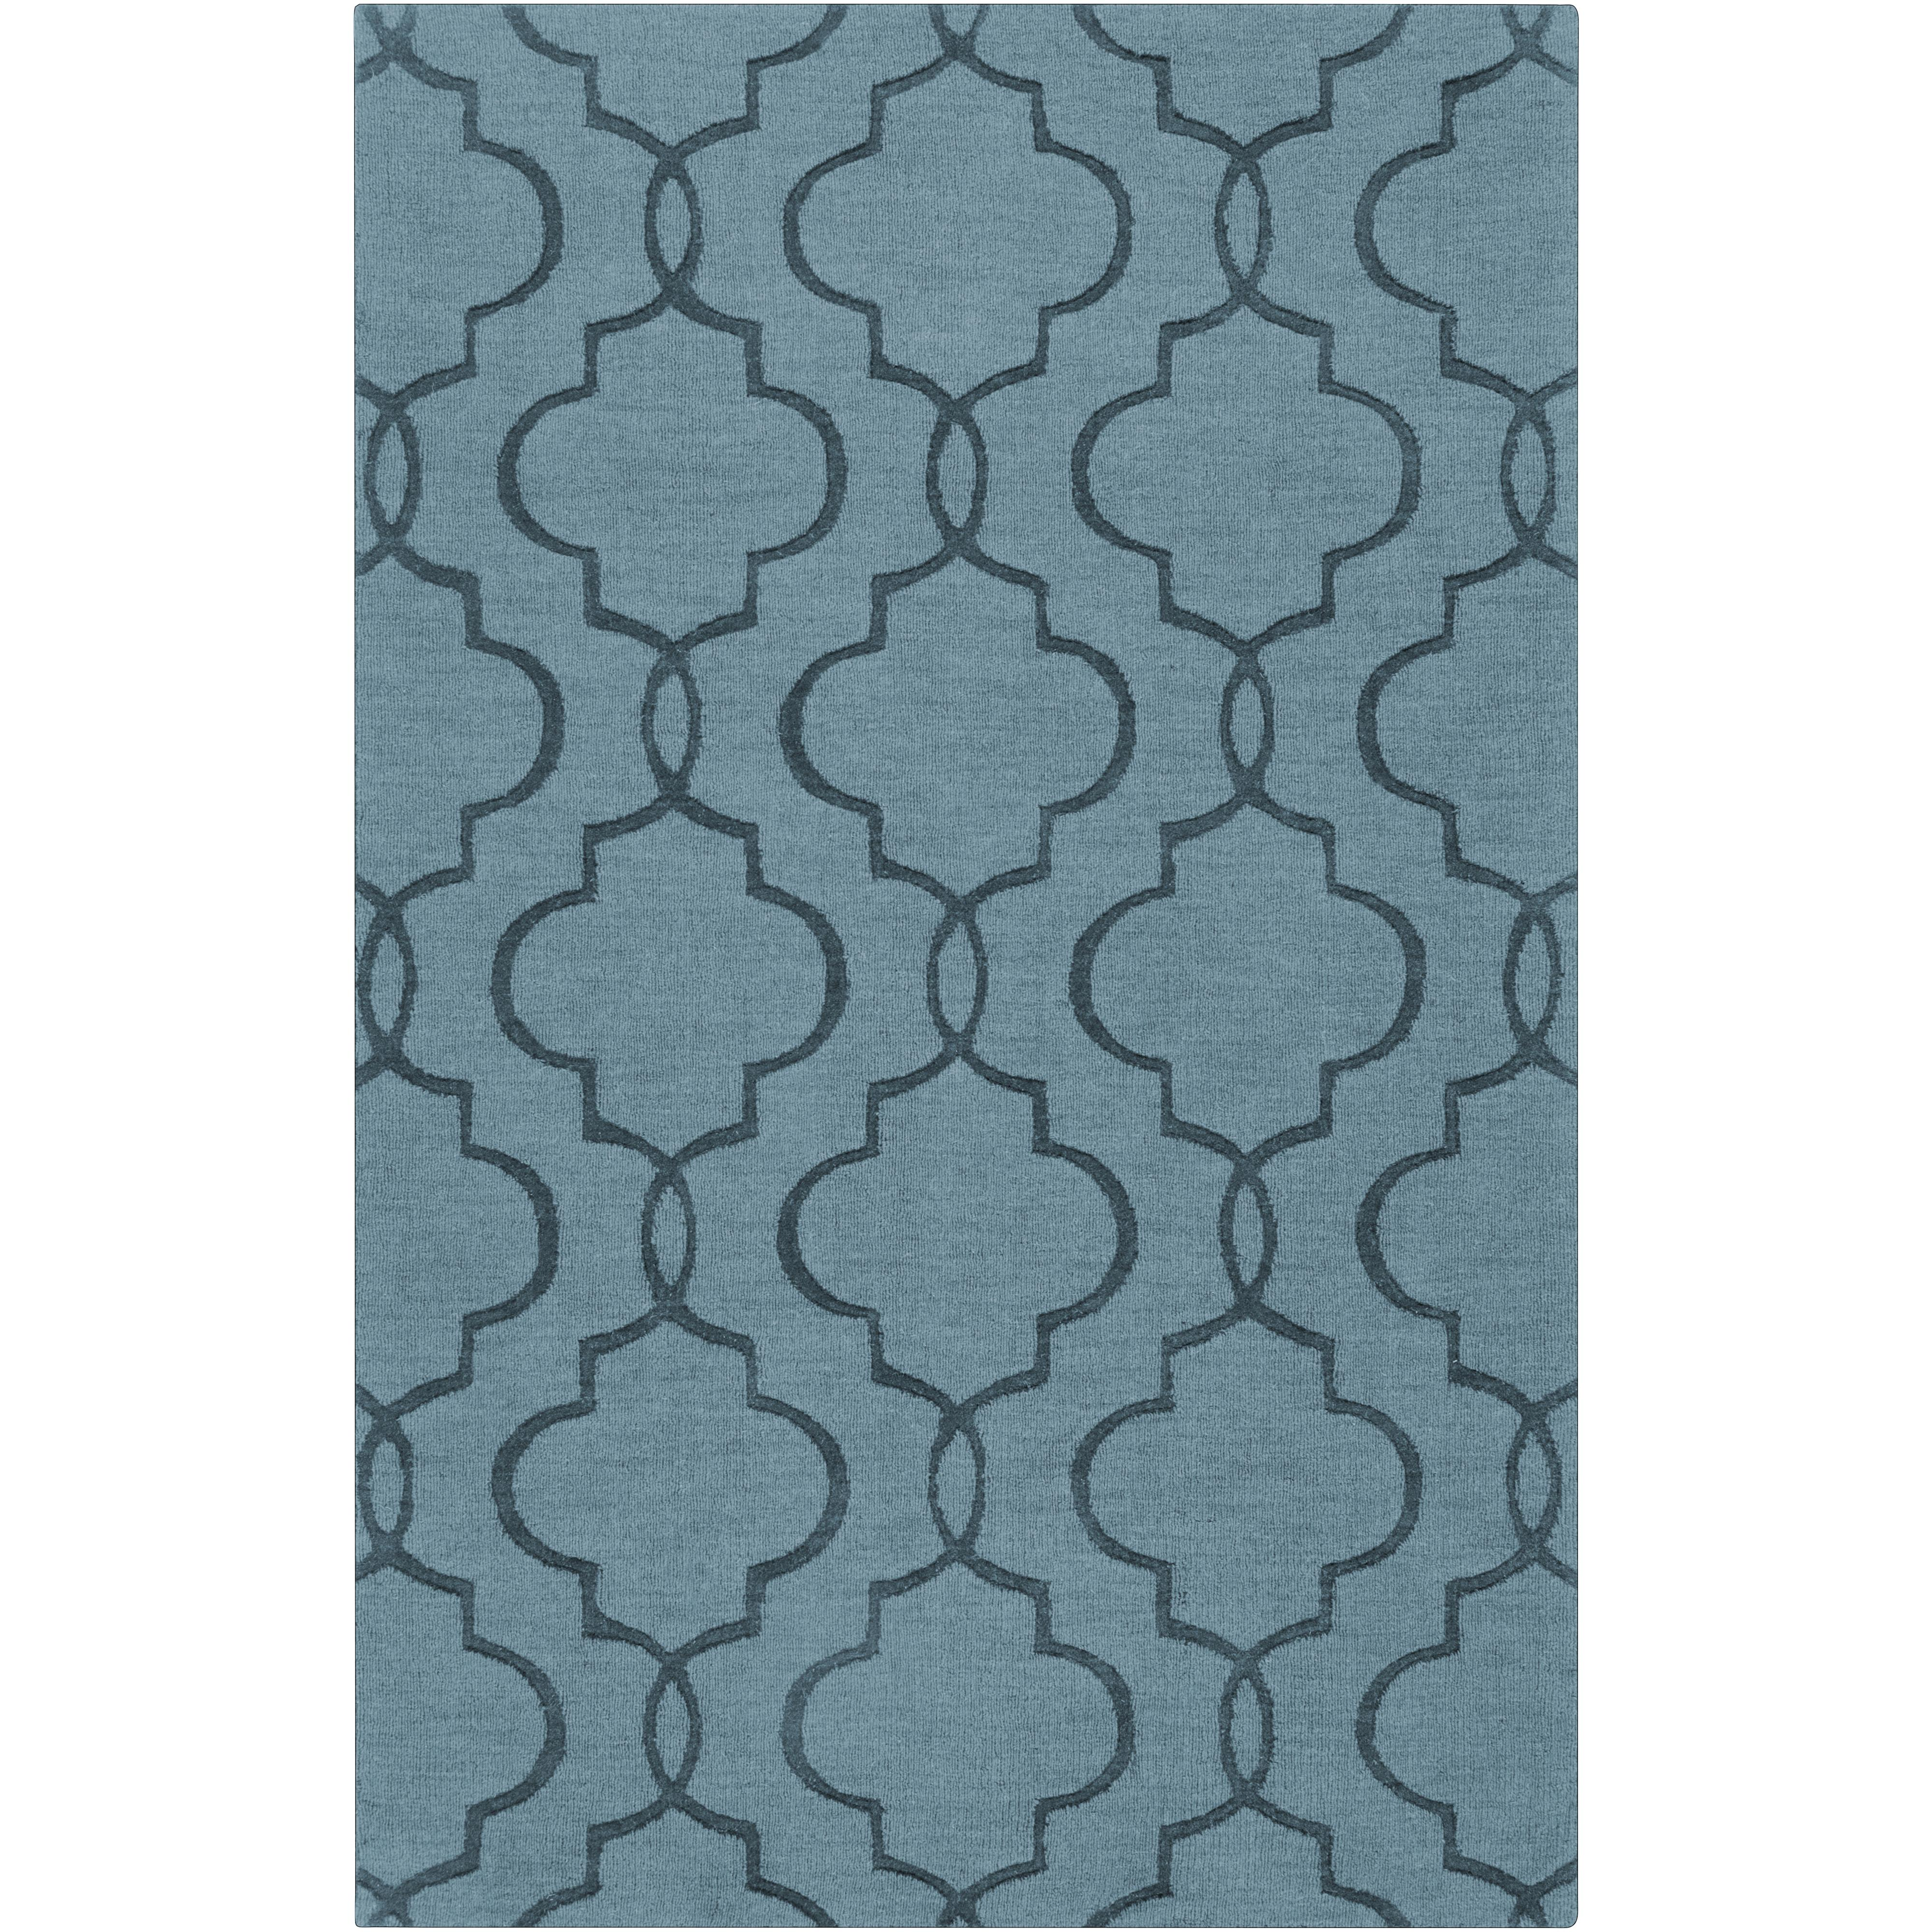 Surya Rugs Mystique 8' x 11' - Item Number: M5181-811